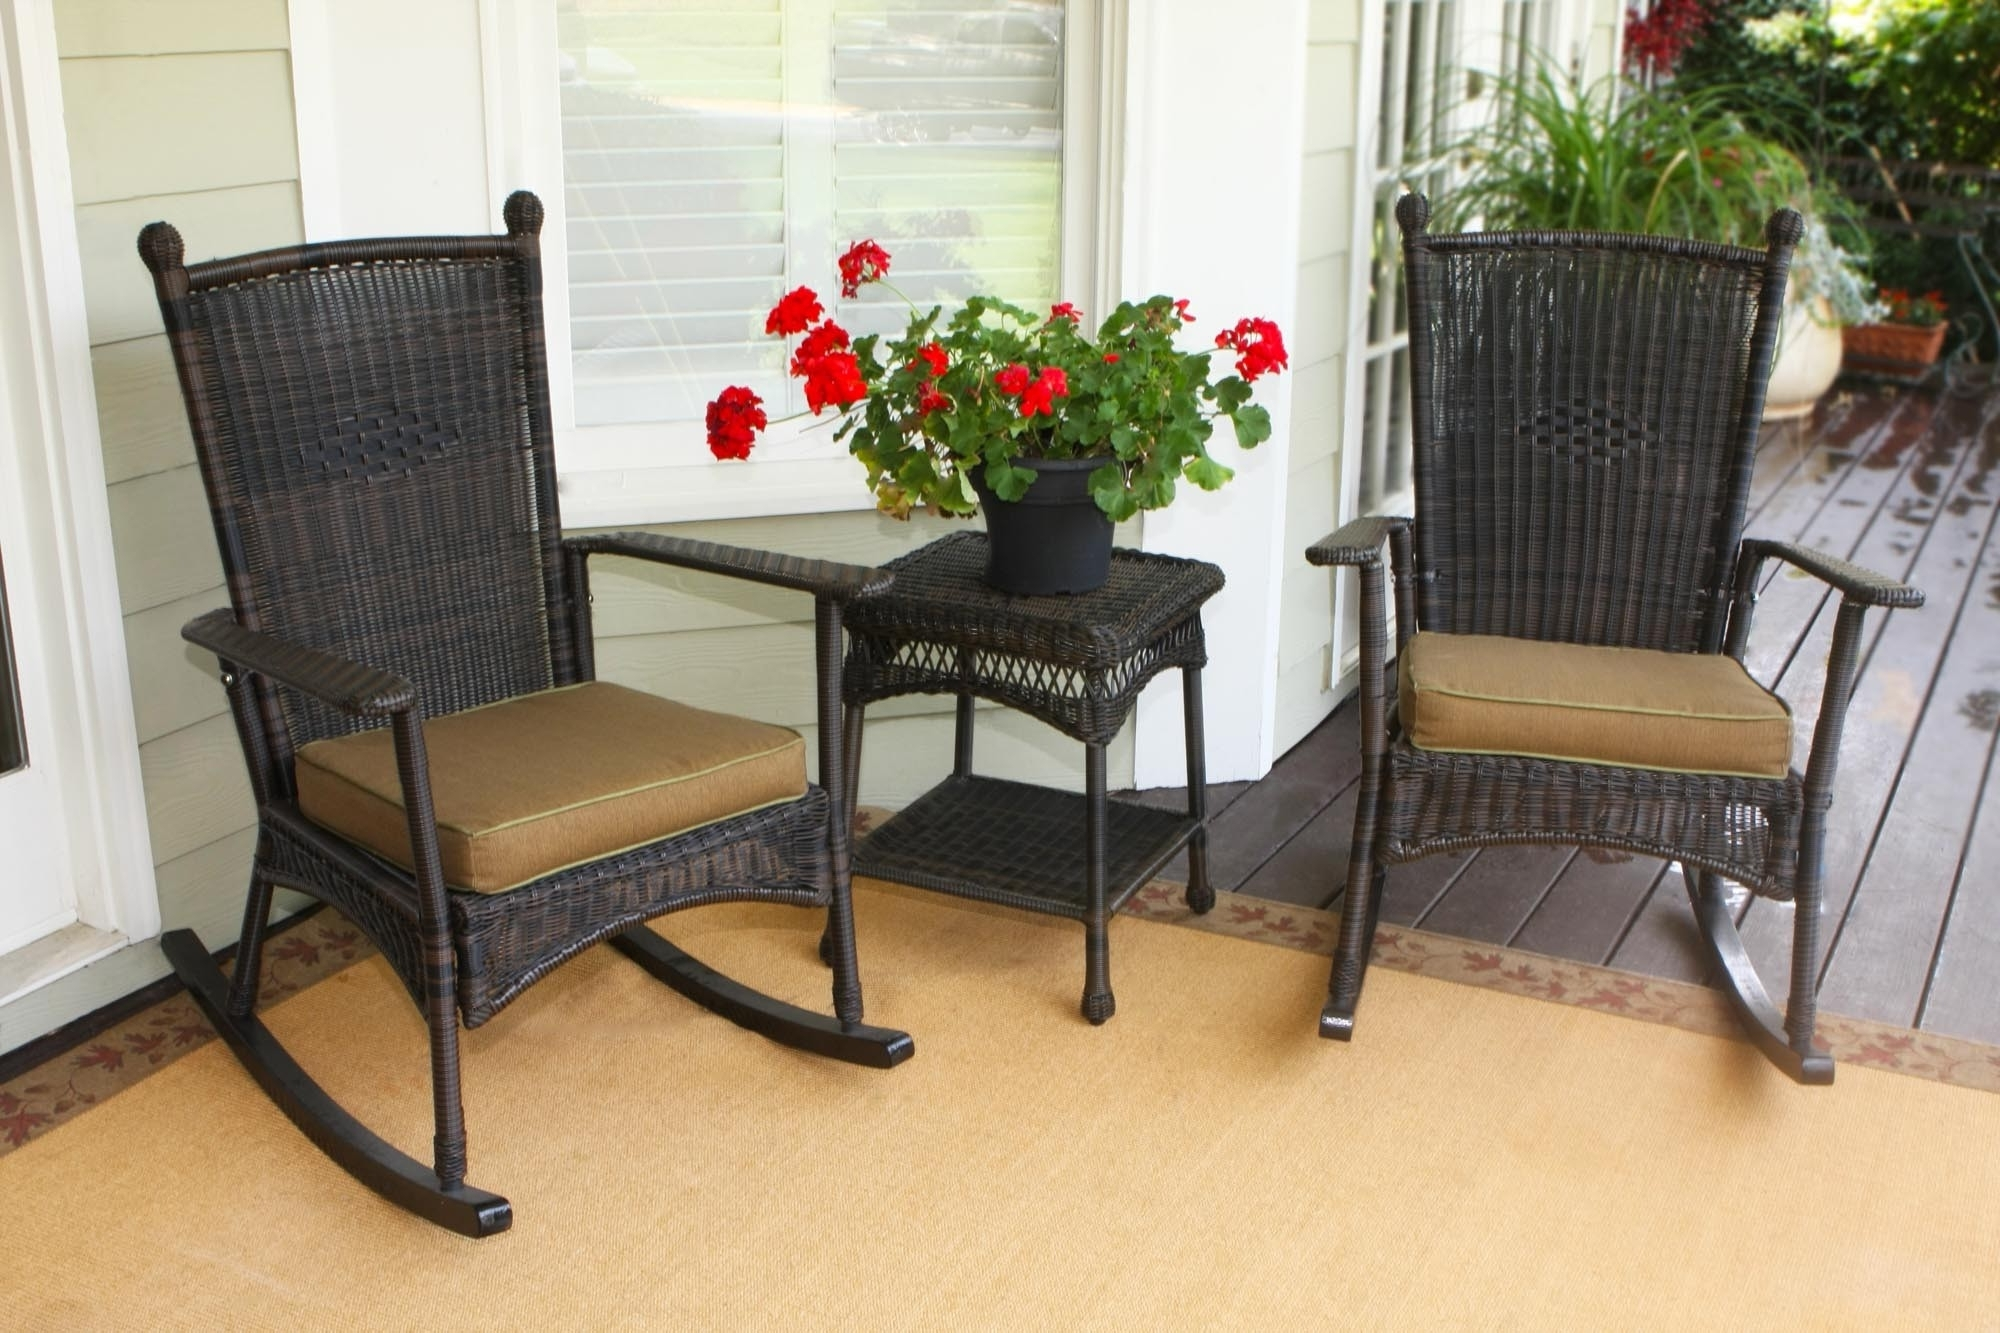 Outdoor Rocking Chairs With Table With Regard To Widely Used Rocking Chairs – Tortuga Outdoor Of Georgia – Alpharetta (View 11 of 15)